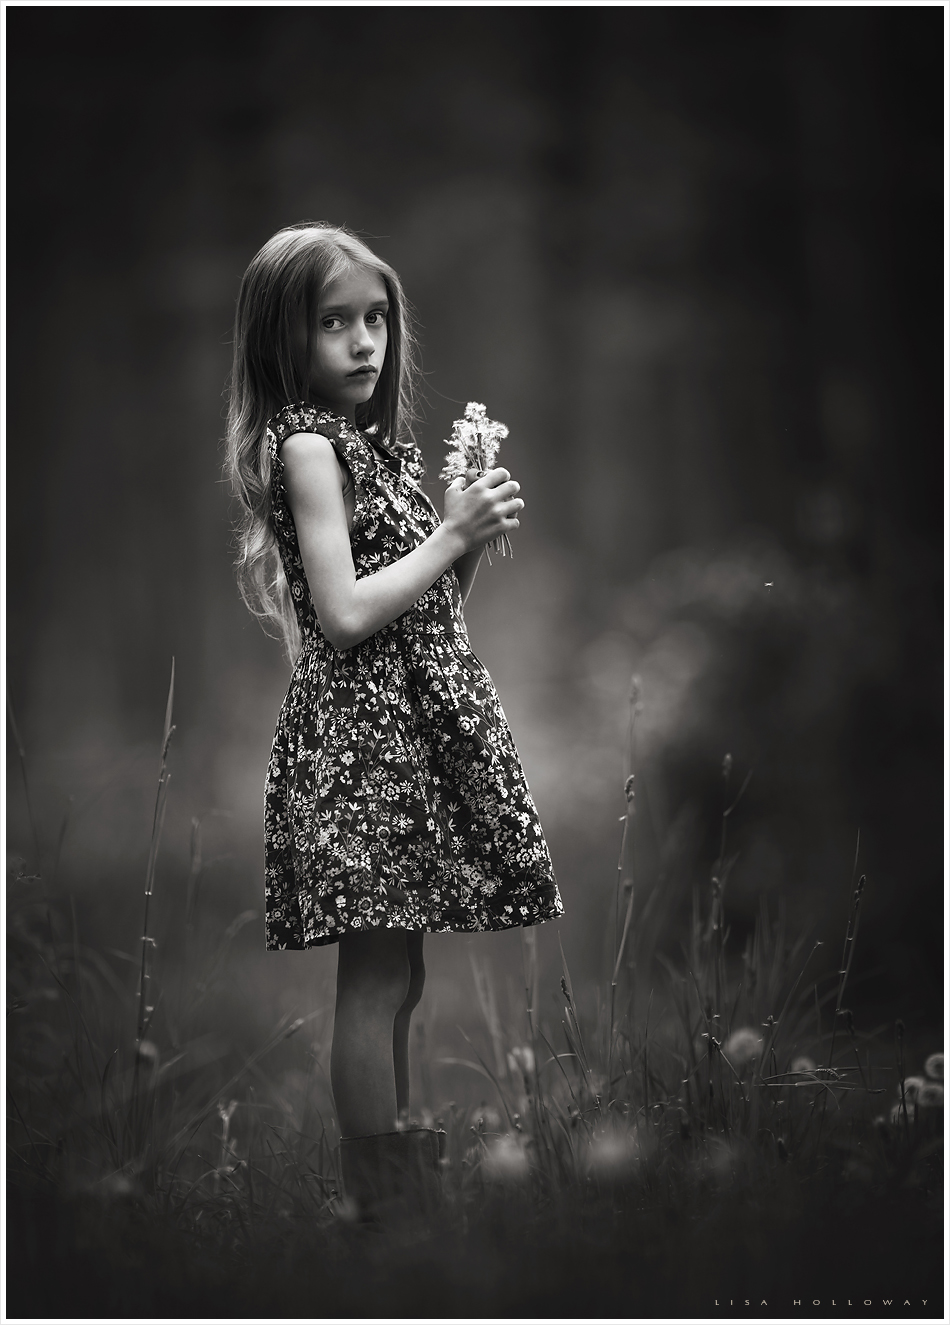 moody black and white portrait of a little girl with long hair standing outside